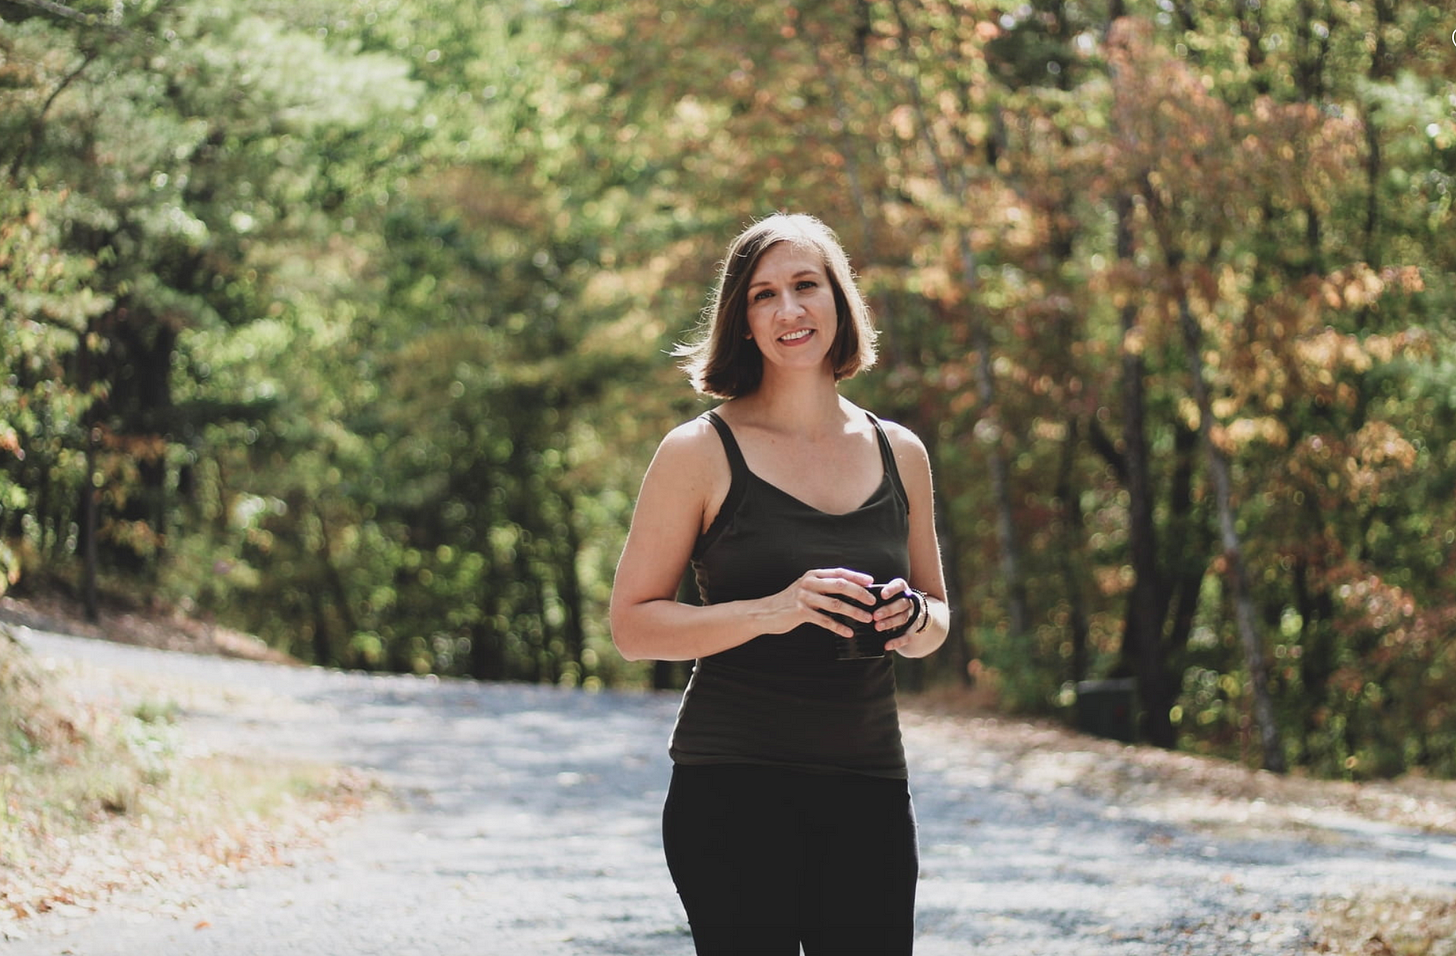 A white, brunette woman in an olive tank top and black pants holds a black coffee mug on a trail in the woods